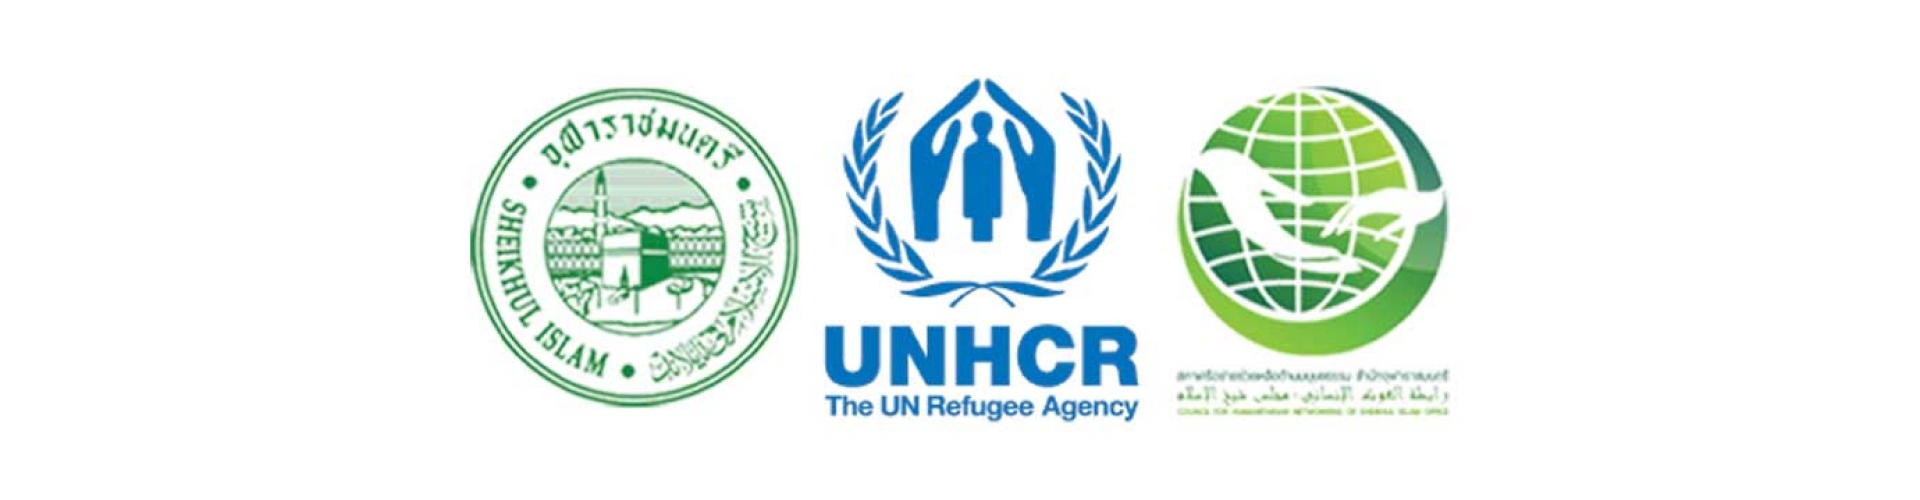 UNHCR continues partnerships with Sheikhul Islam Office during Ramadan for the third year in Thailand amid COVID-19 crisis